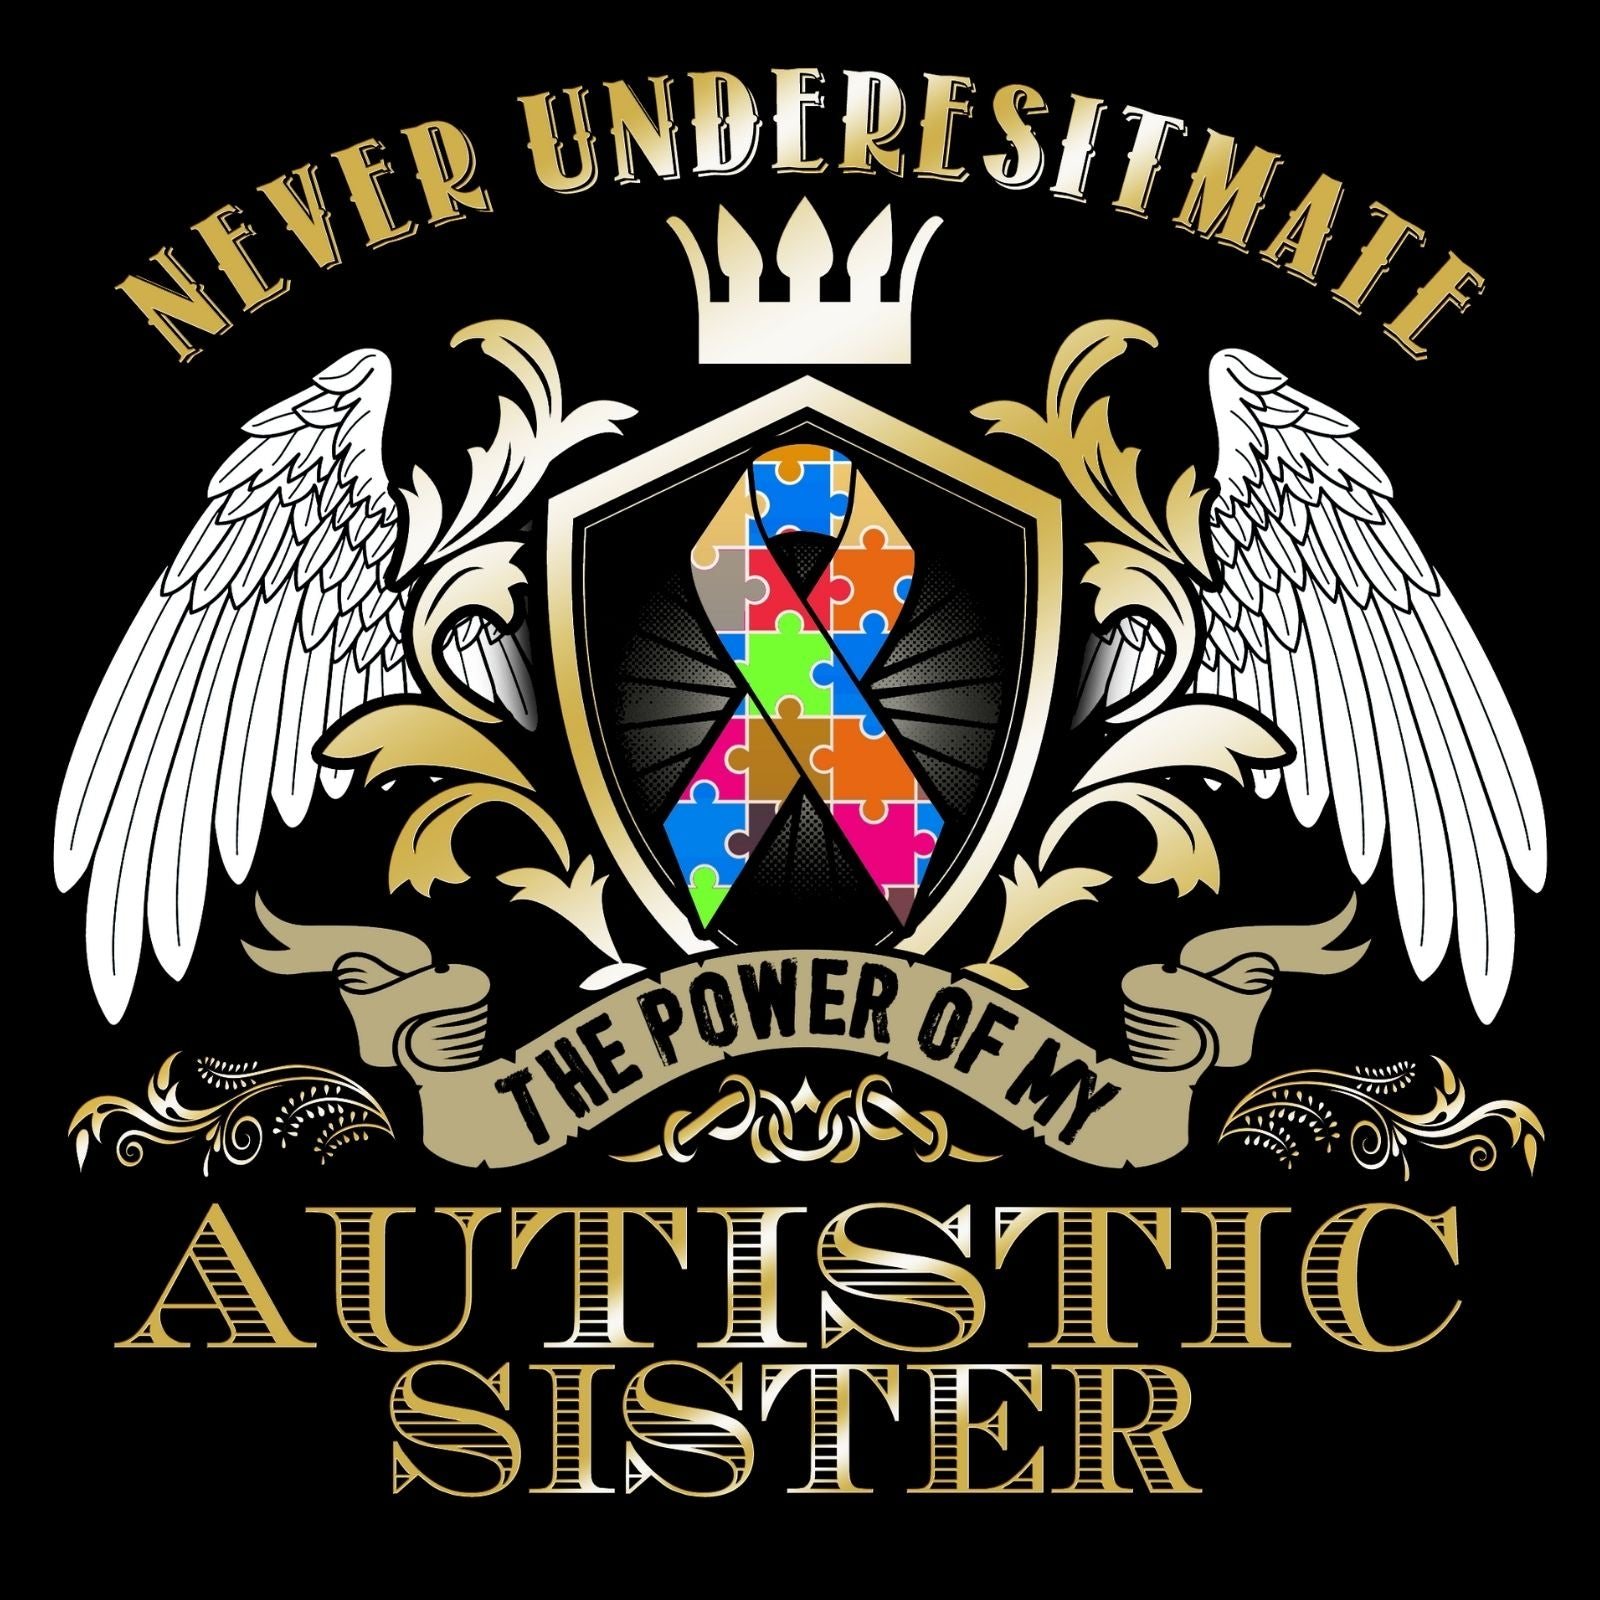 Never Underestimate The Power Of My Autistic Sister - Bastard Graphics